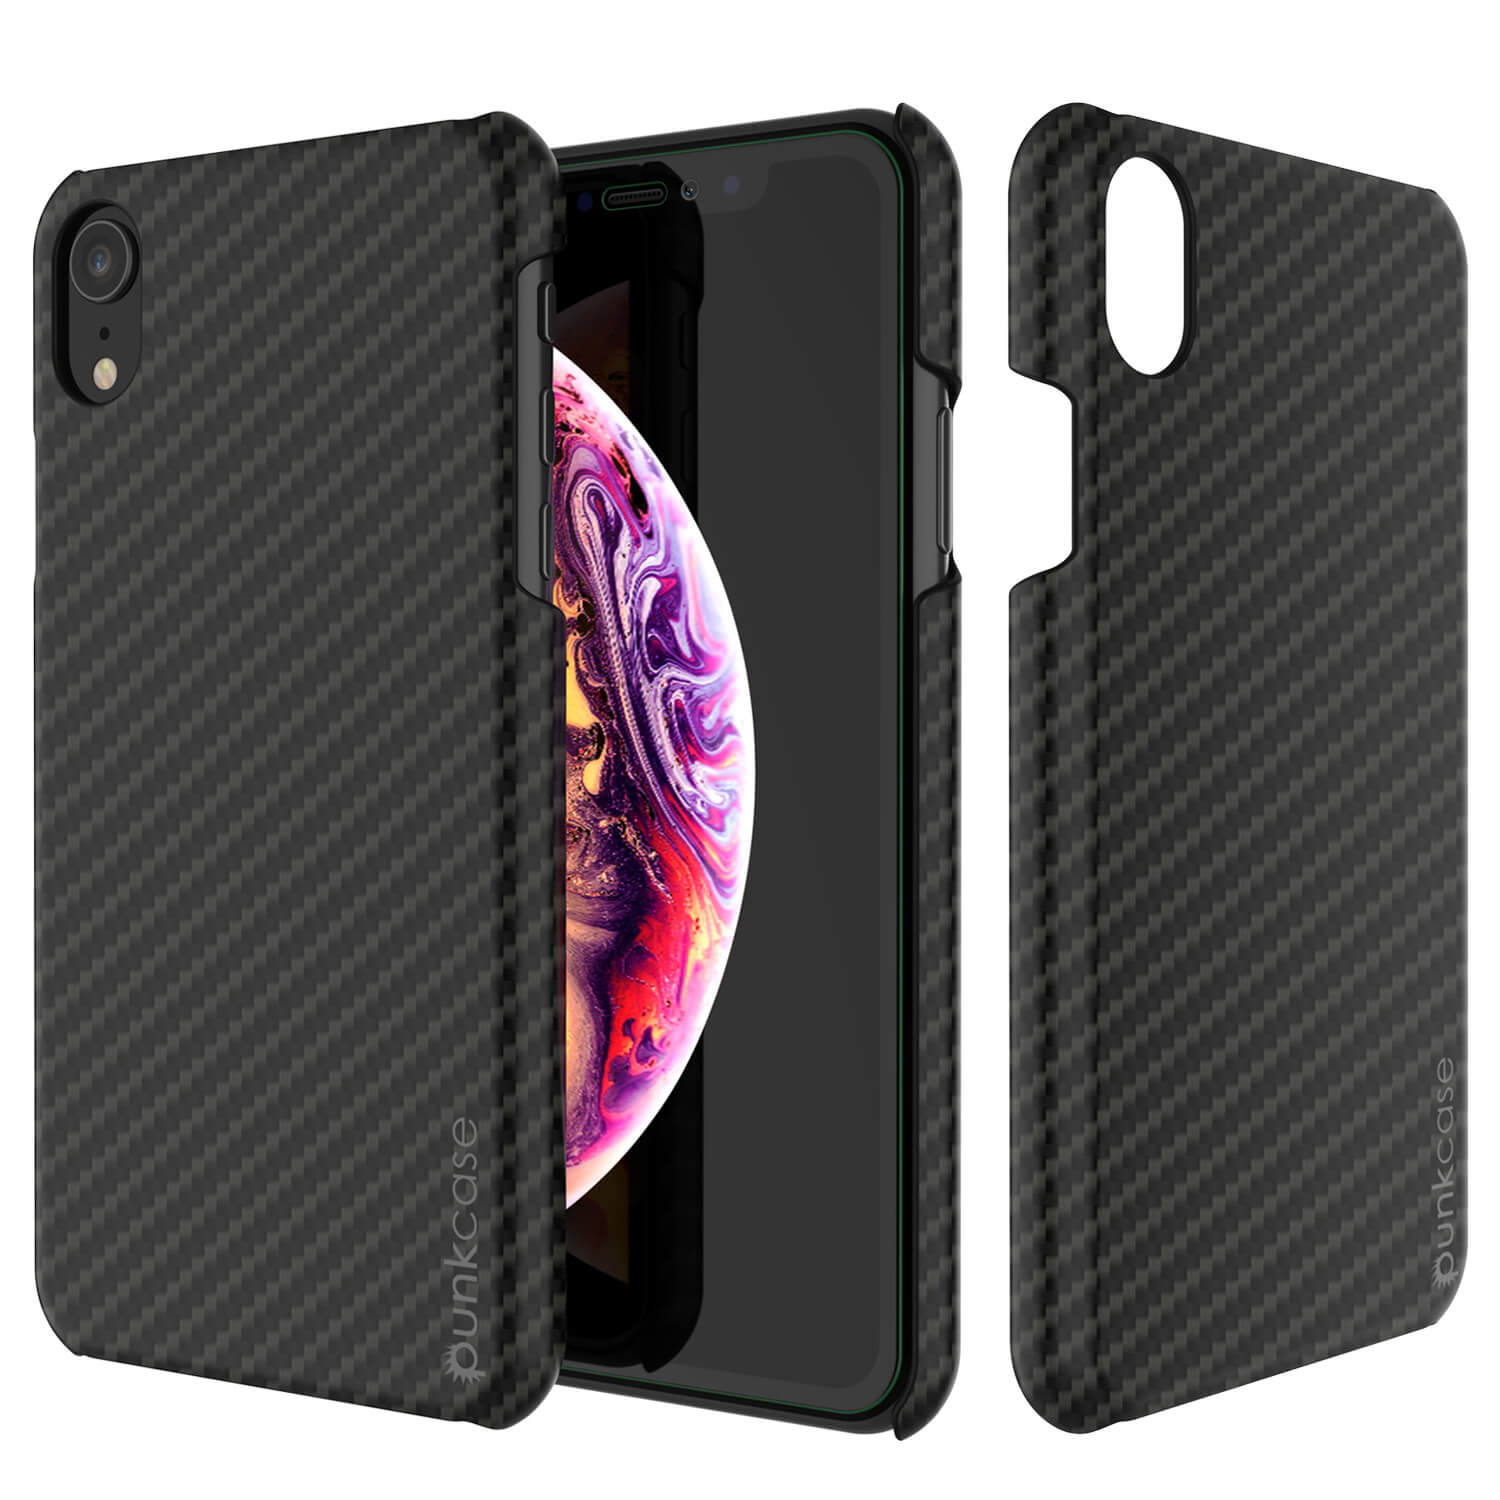 Galaxy S4 Custodia IPhone 8 Custodia Iphone 6 / 6s / 7 Cover Dual